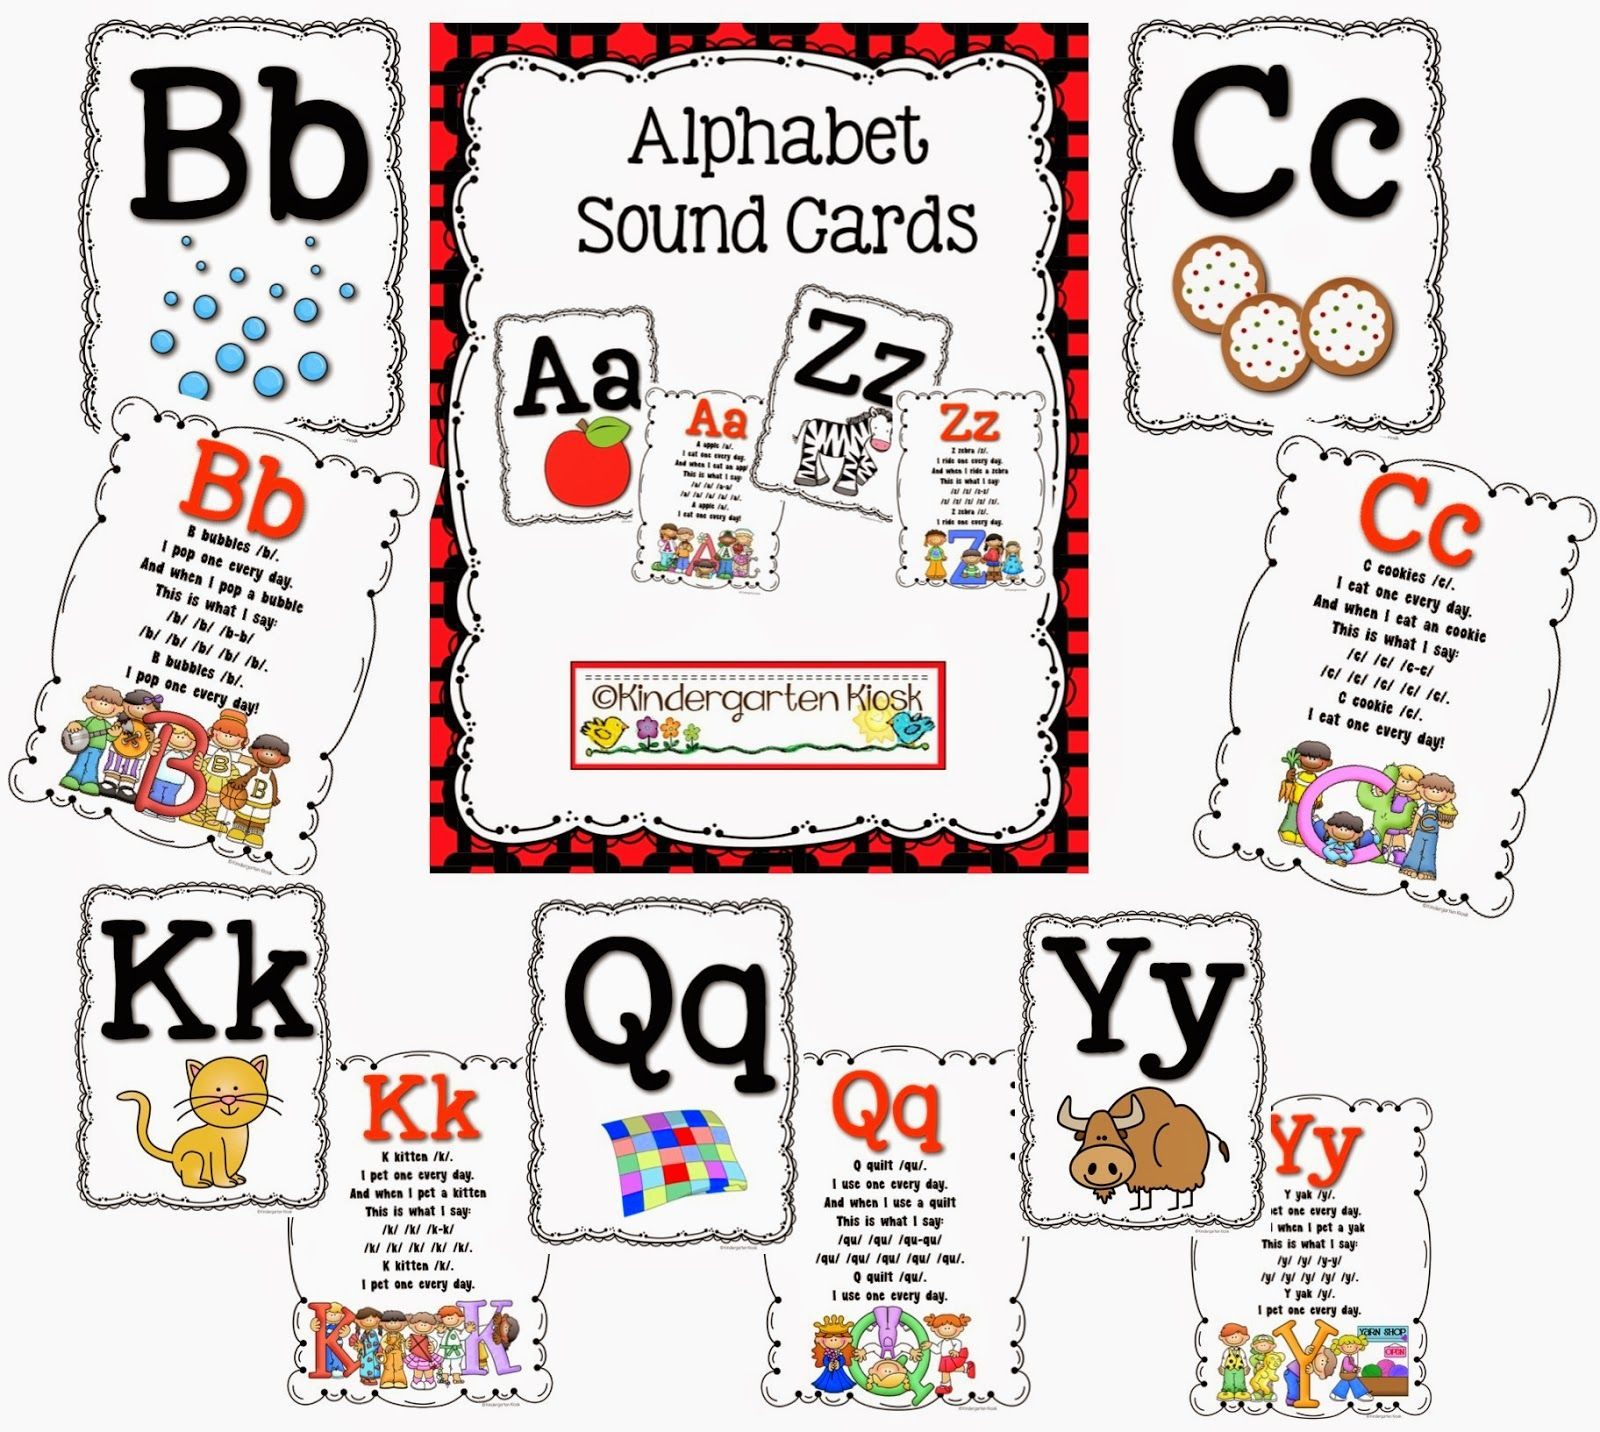 Have You Been Looking For Just The Right Alphabet Sound Cards Well Look No Further Kids Love